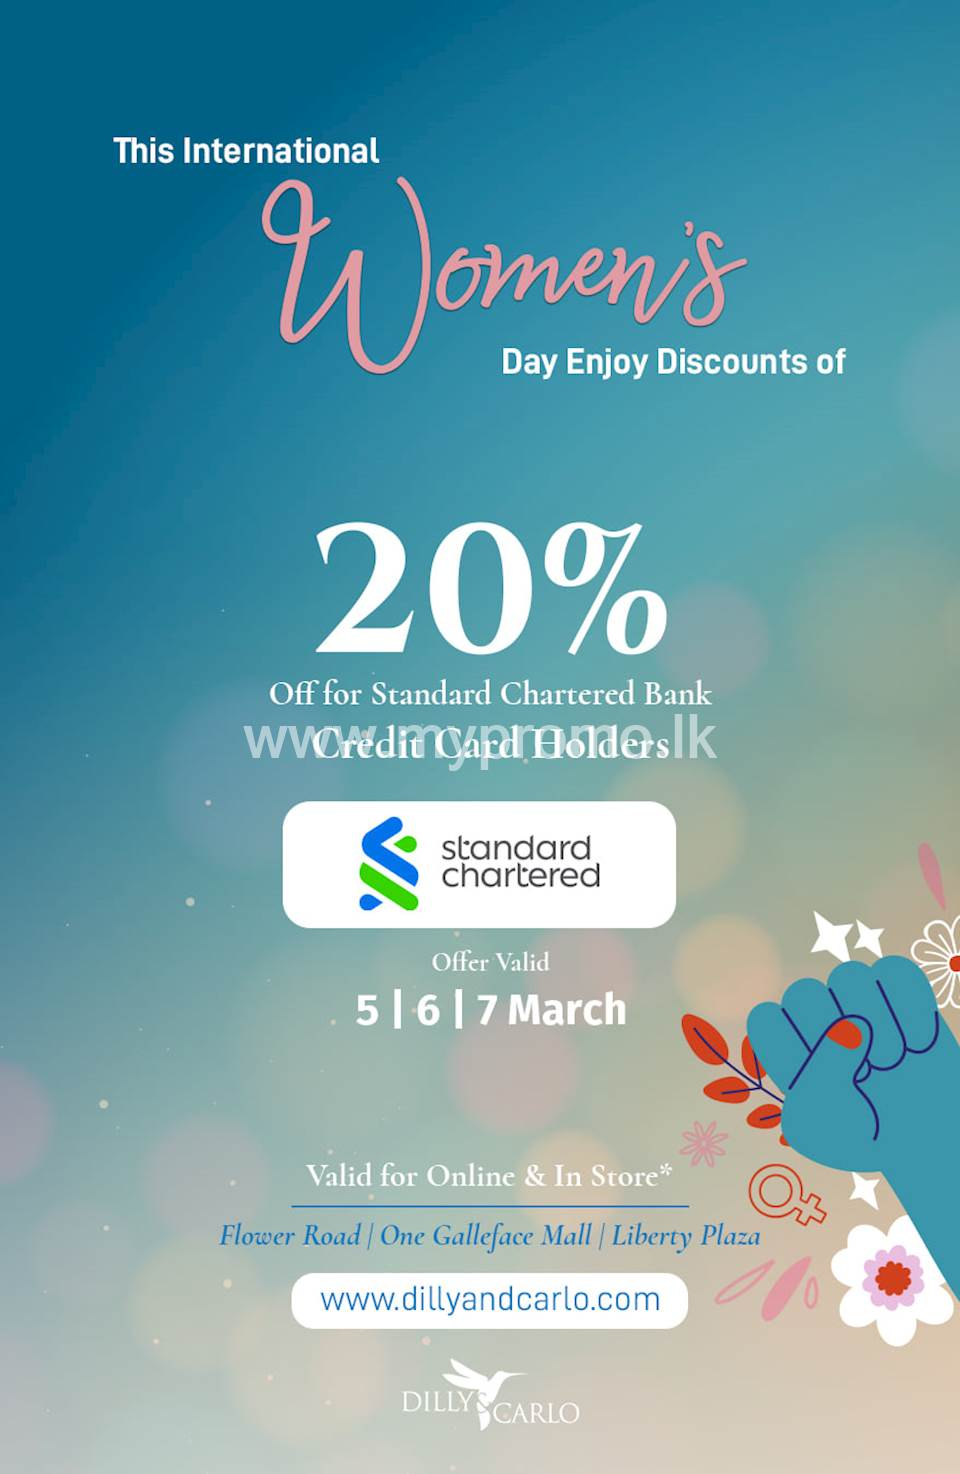 Get 20% on your total bill for Standard Chartered Credit Card Holders at Dilly & Carlo